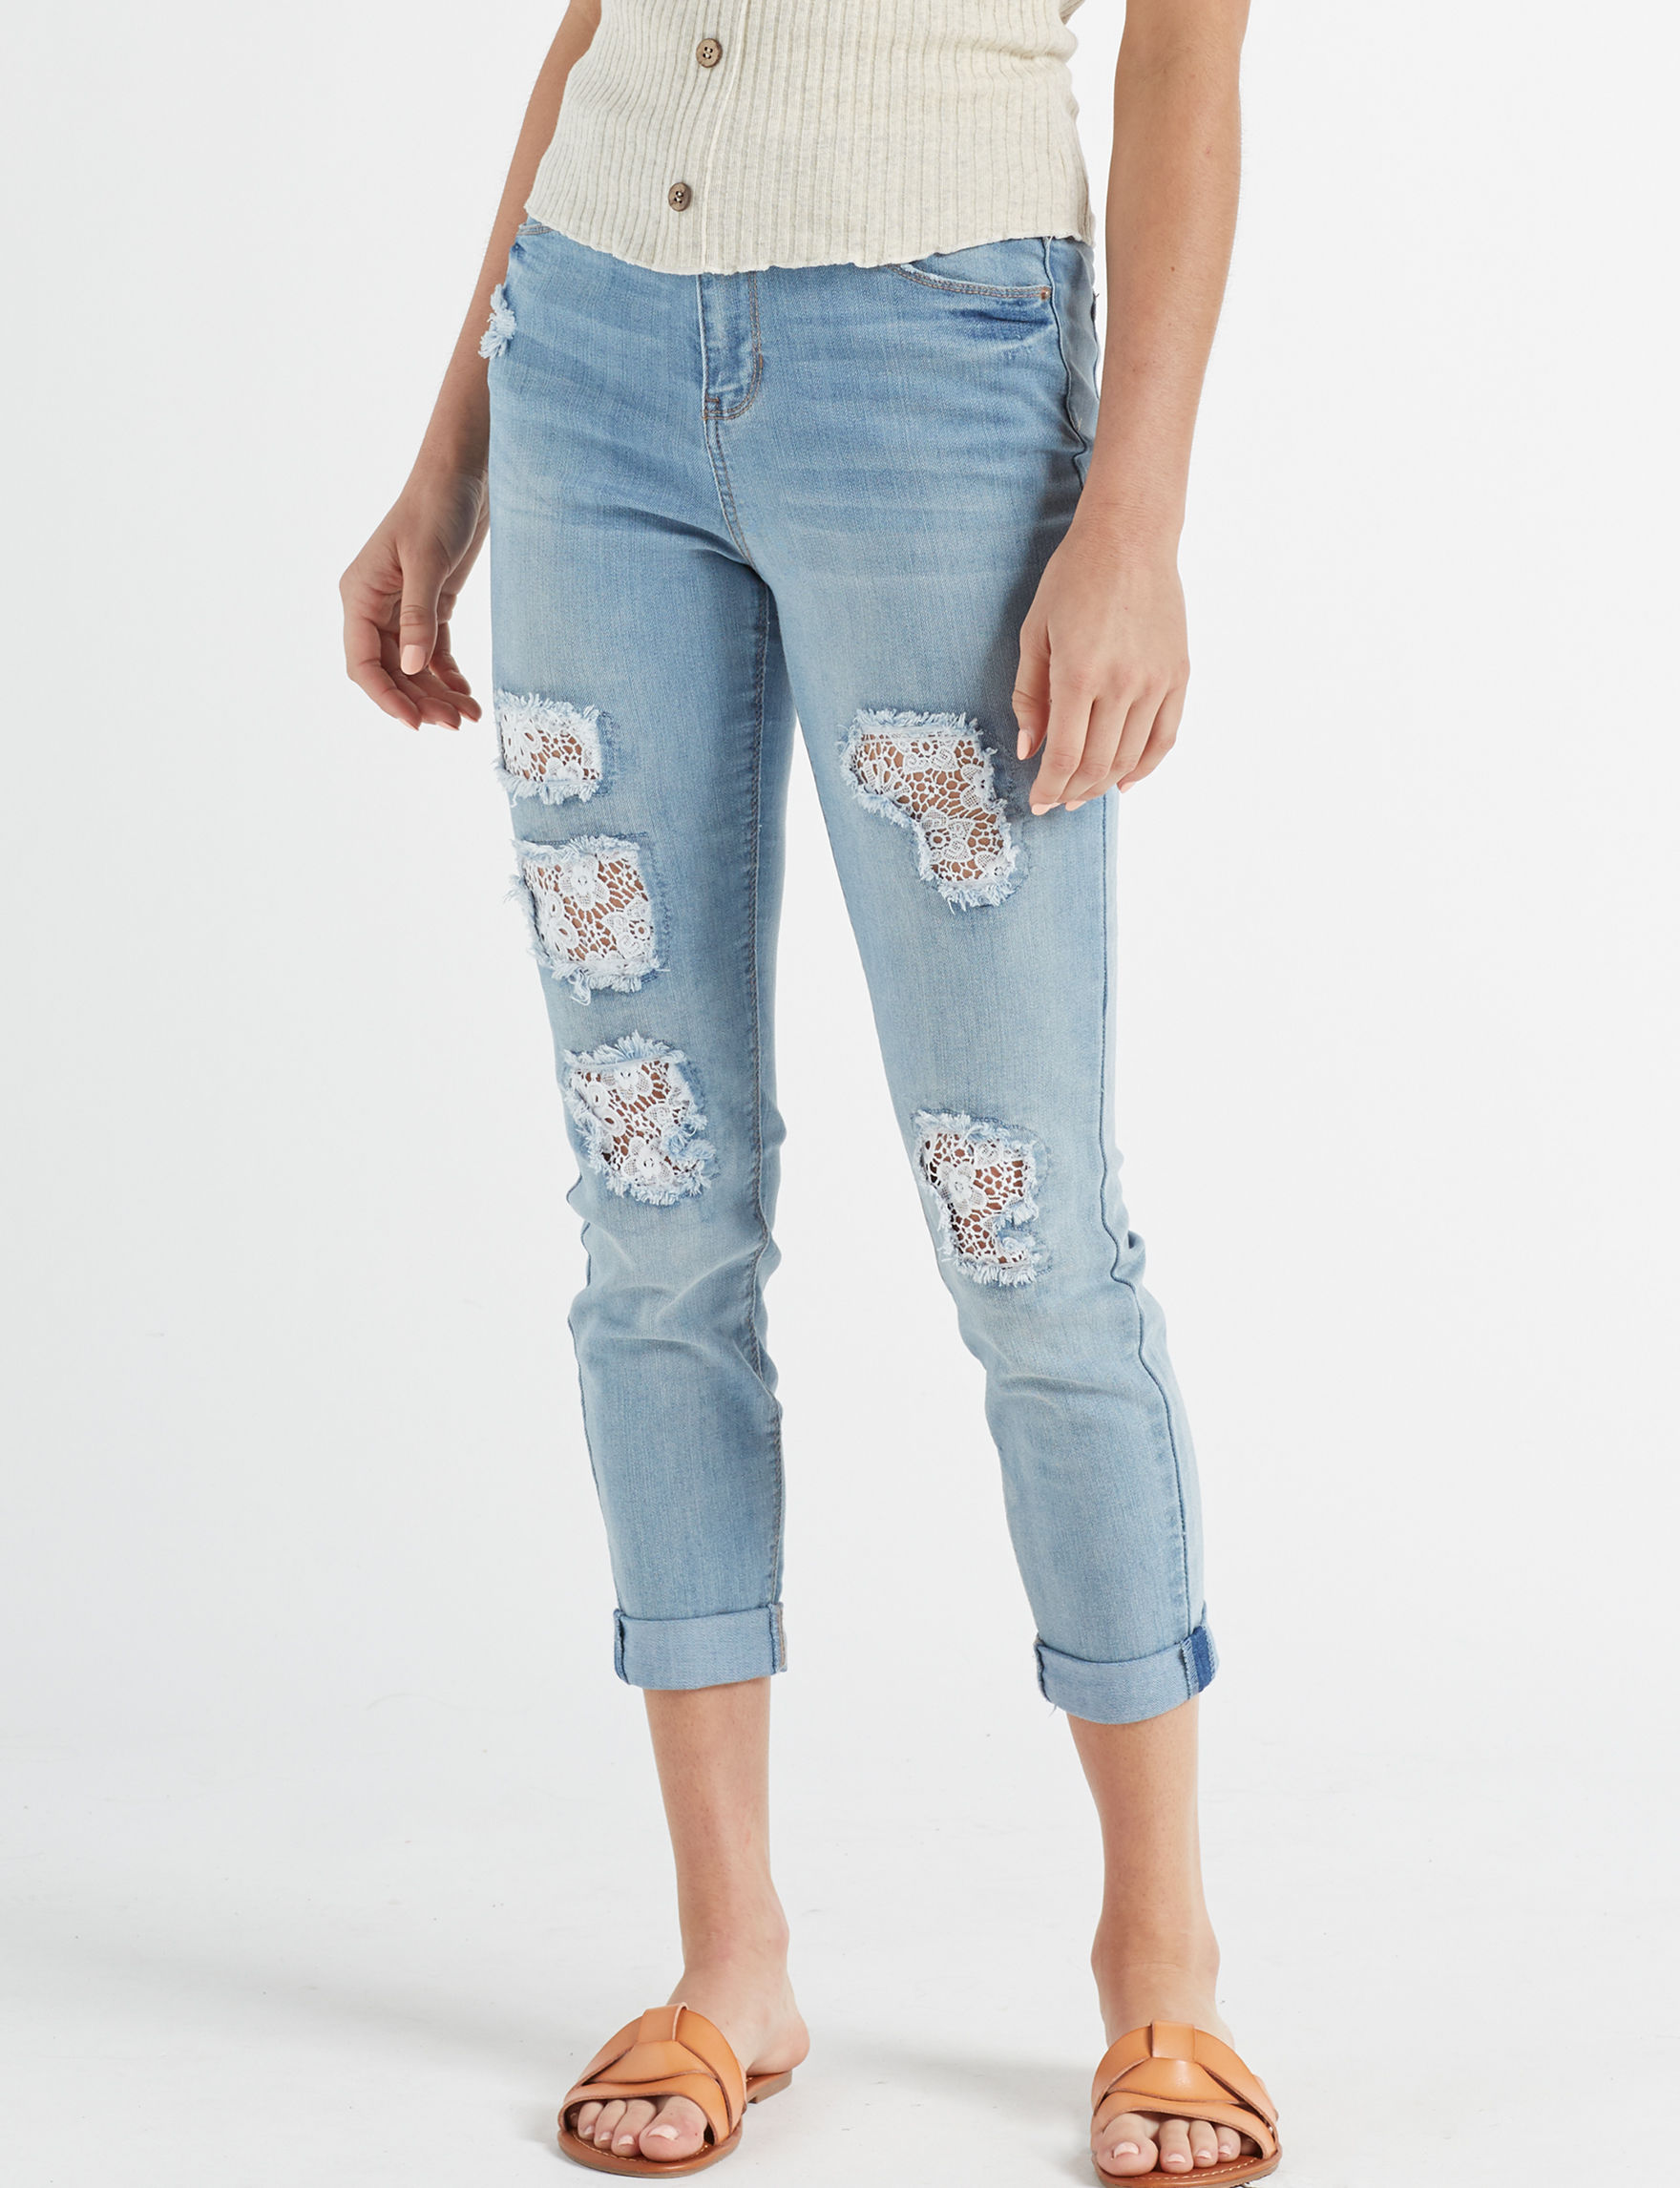 Vanilla Star Light Blue Skinny